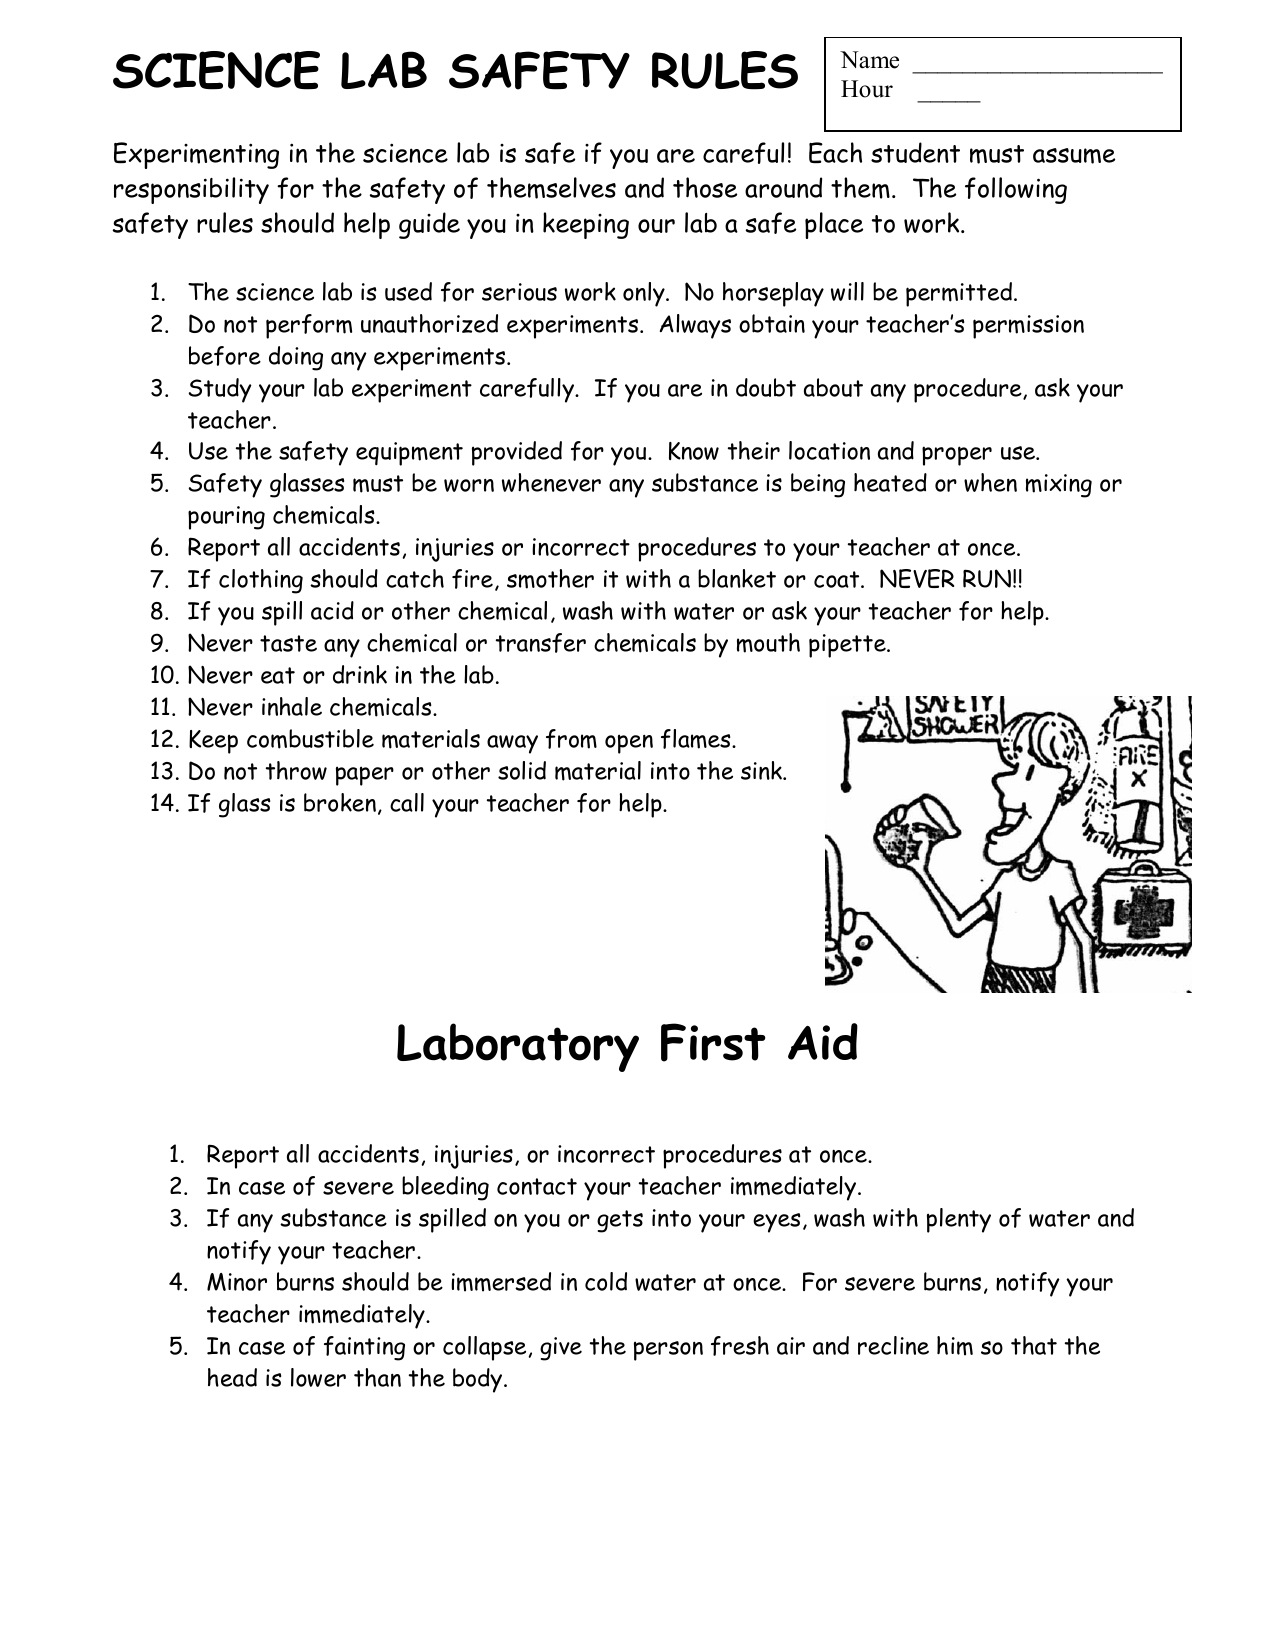 science lab safety rules worksheets science best free printable worksheets. Black Bedroom Furniture Sets. Home Design Ideas